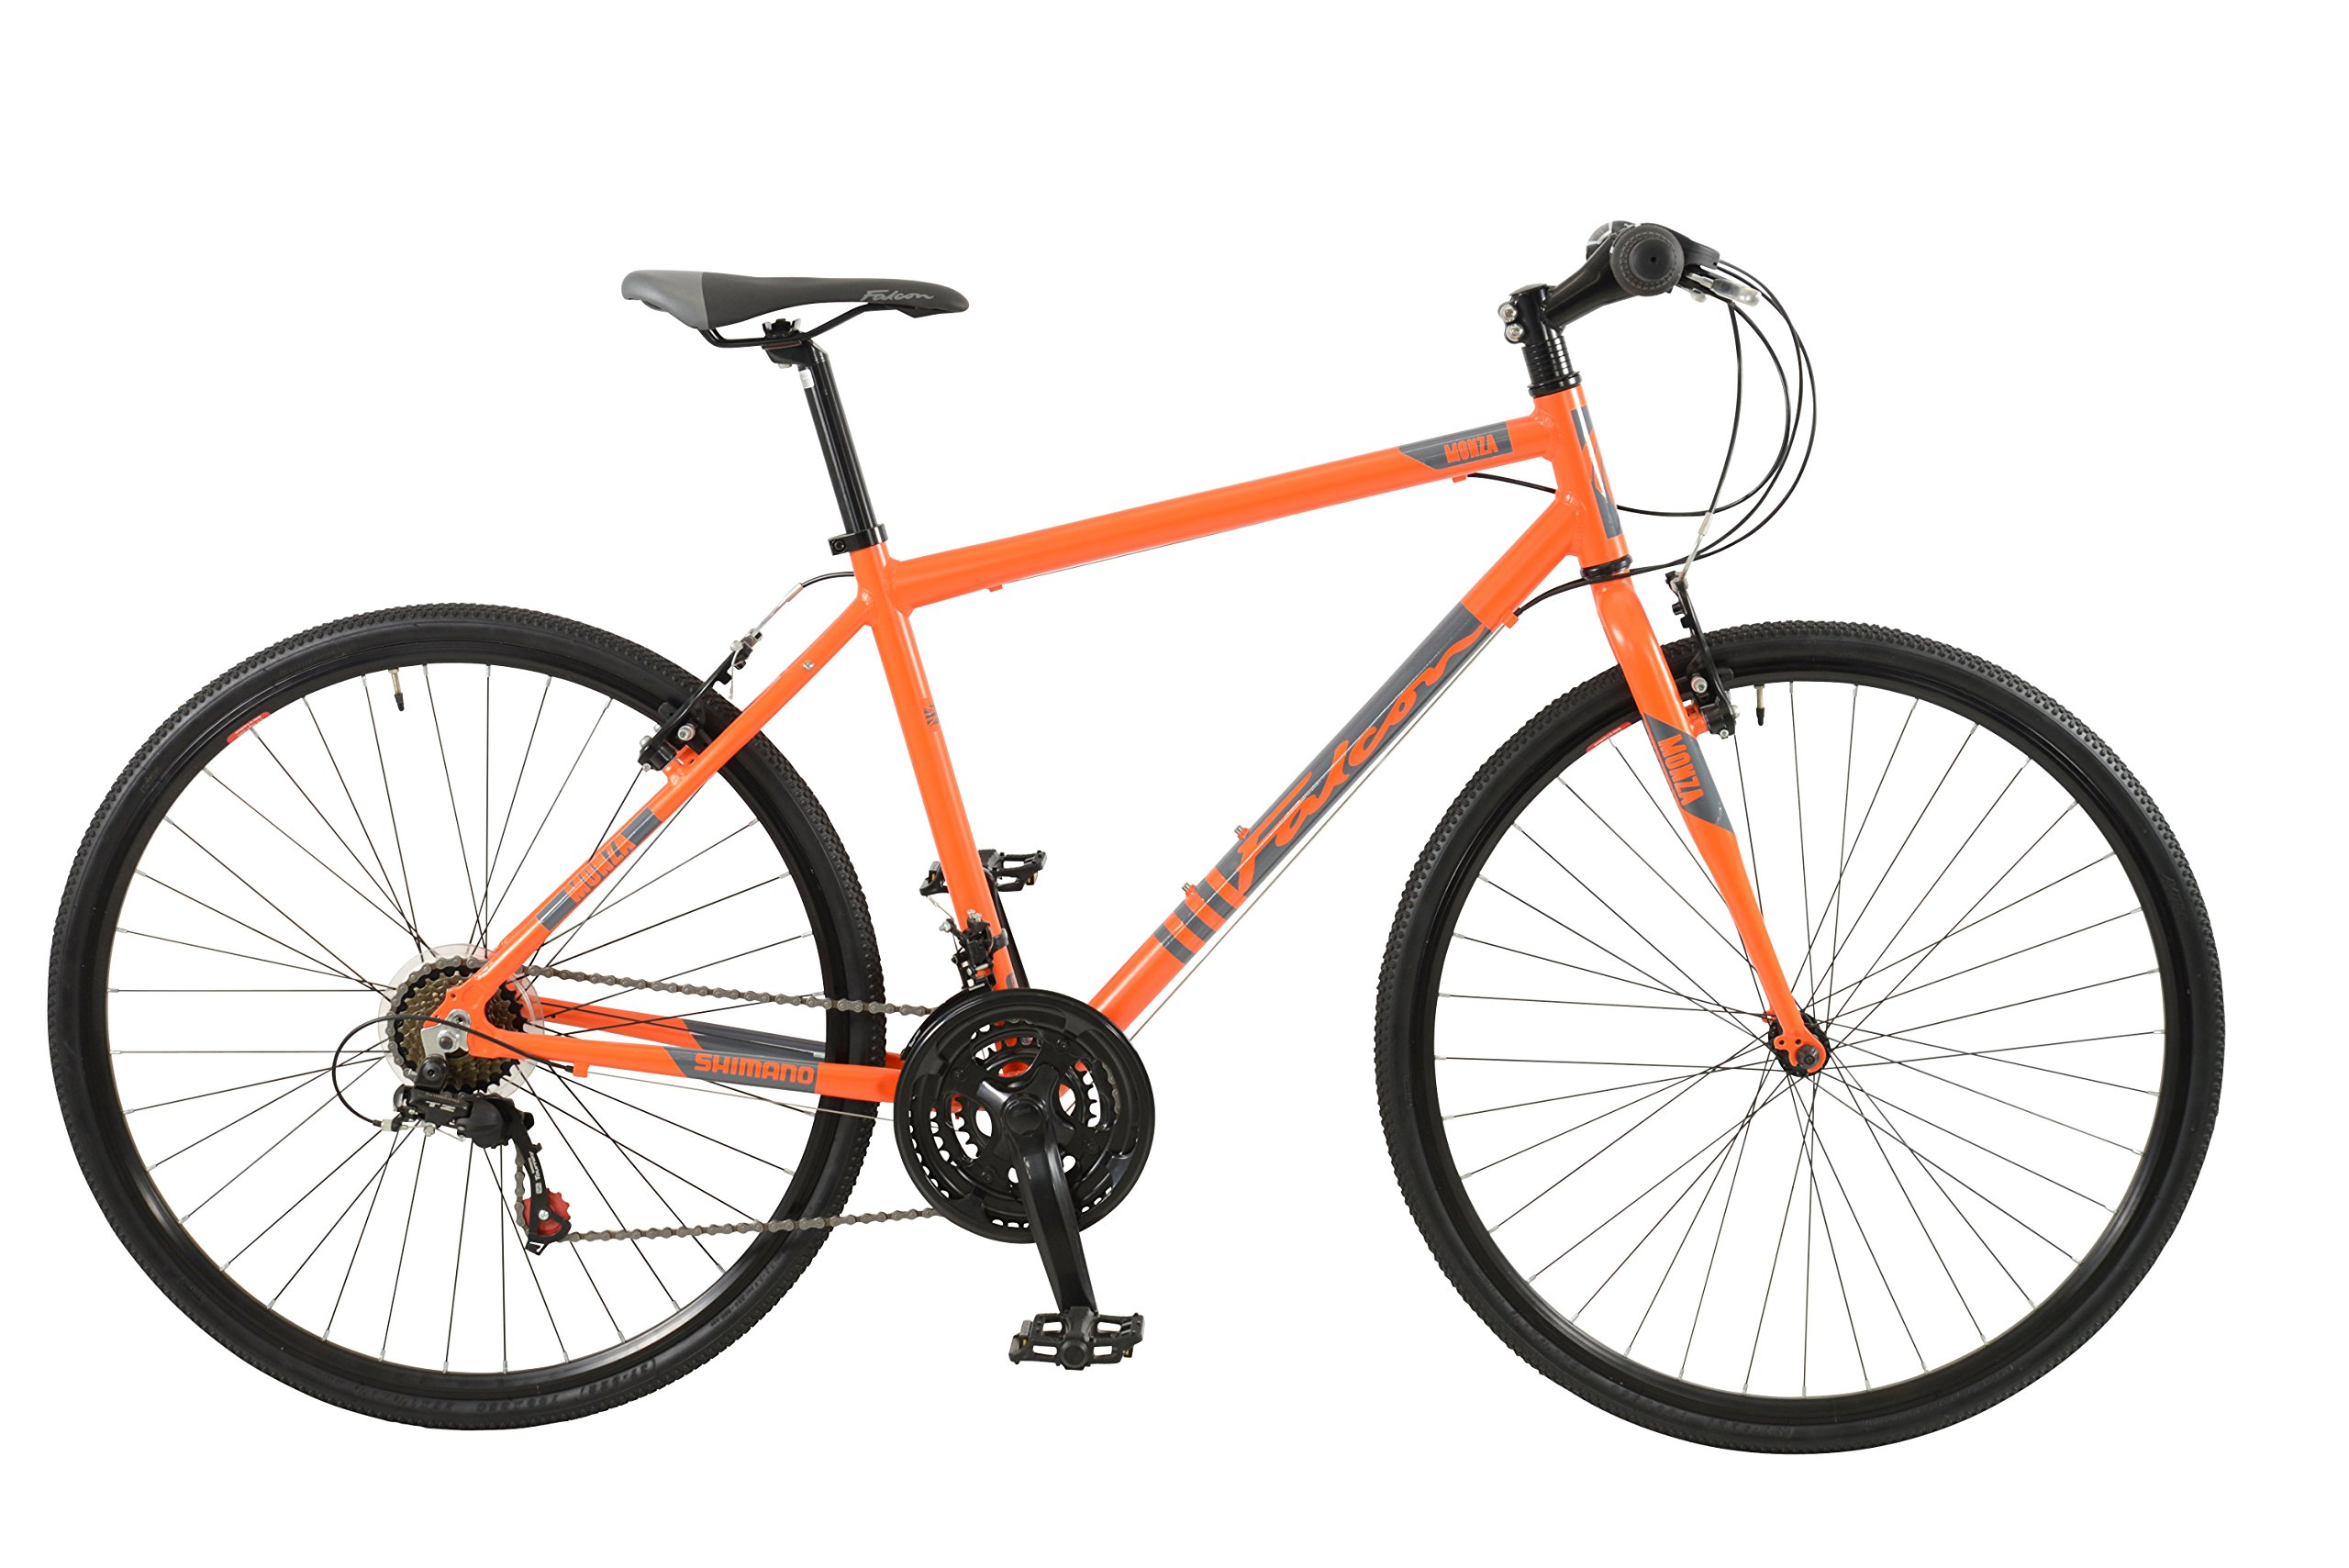 Falcon Monza Mens' Mountain Bike Orange, 19'' inch aluminium frame, 18 speed straight blade high performance steel fork powerful front and rear alloy v brakes by Falcon